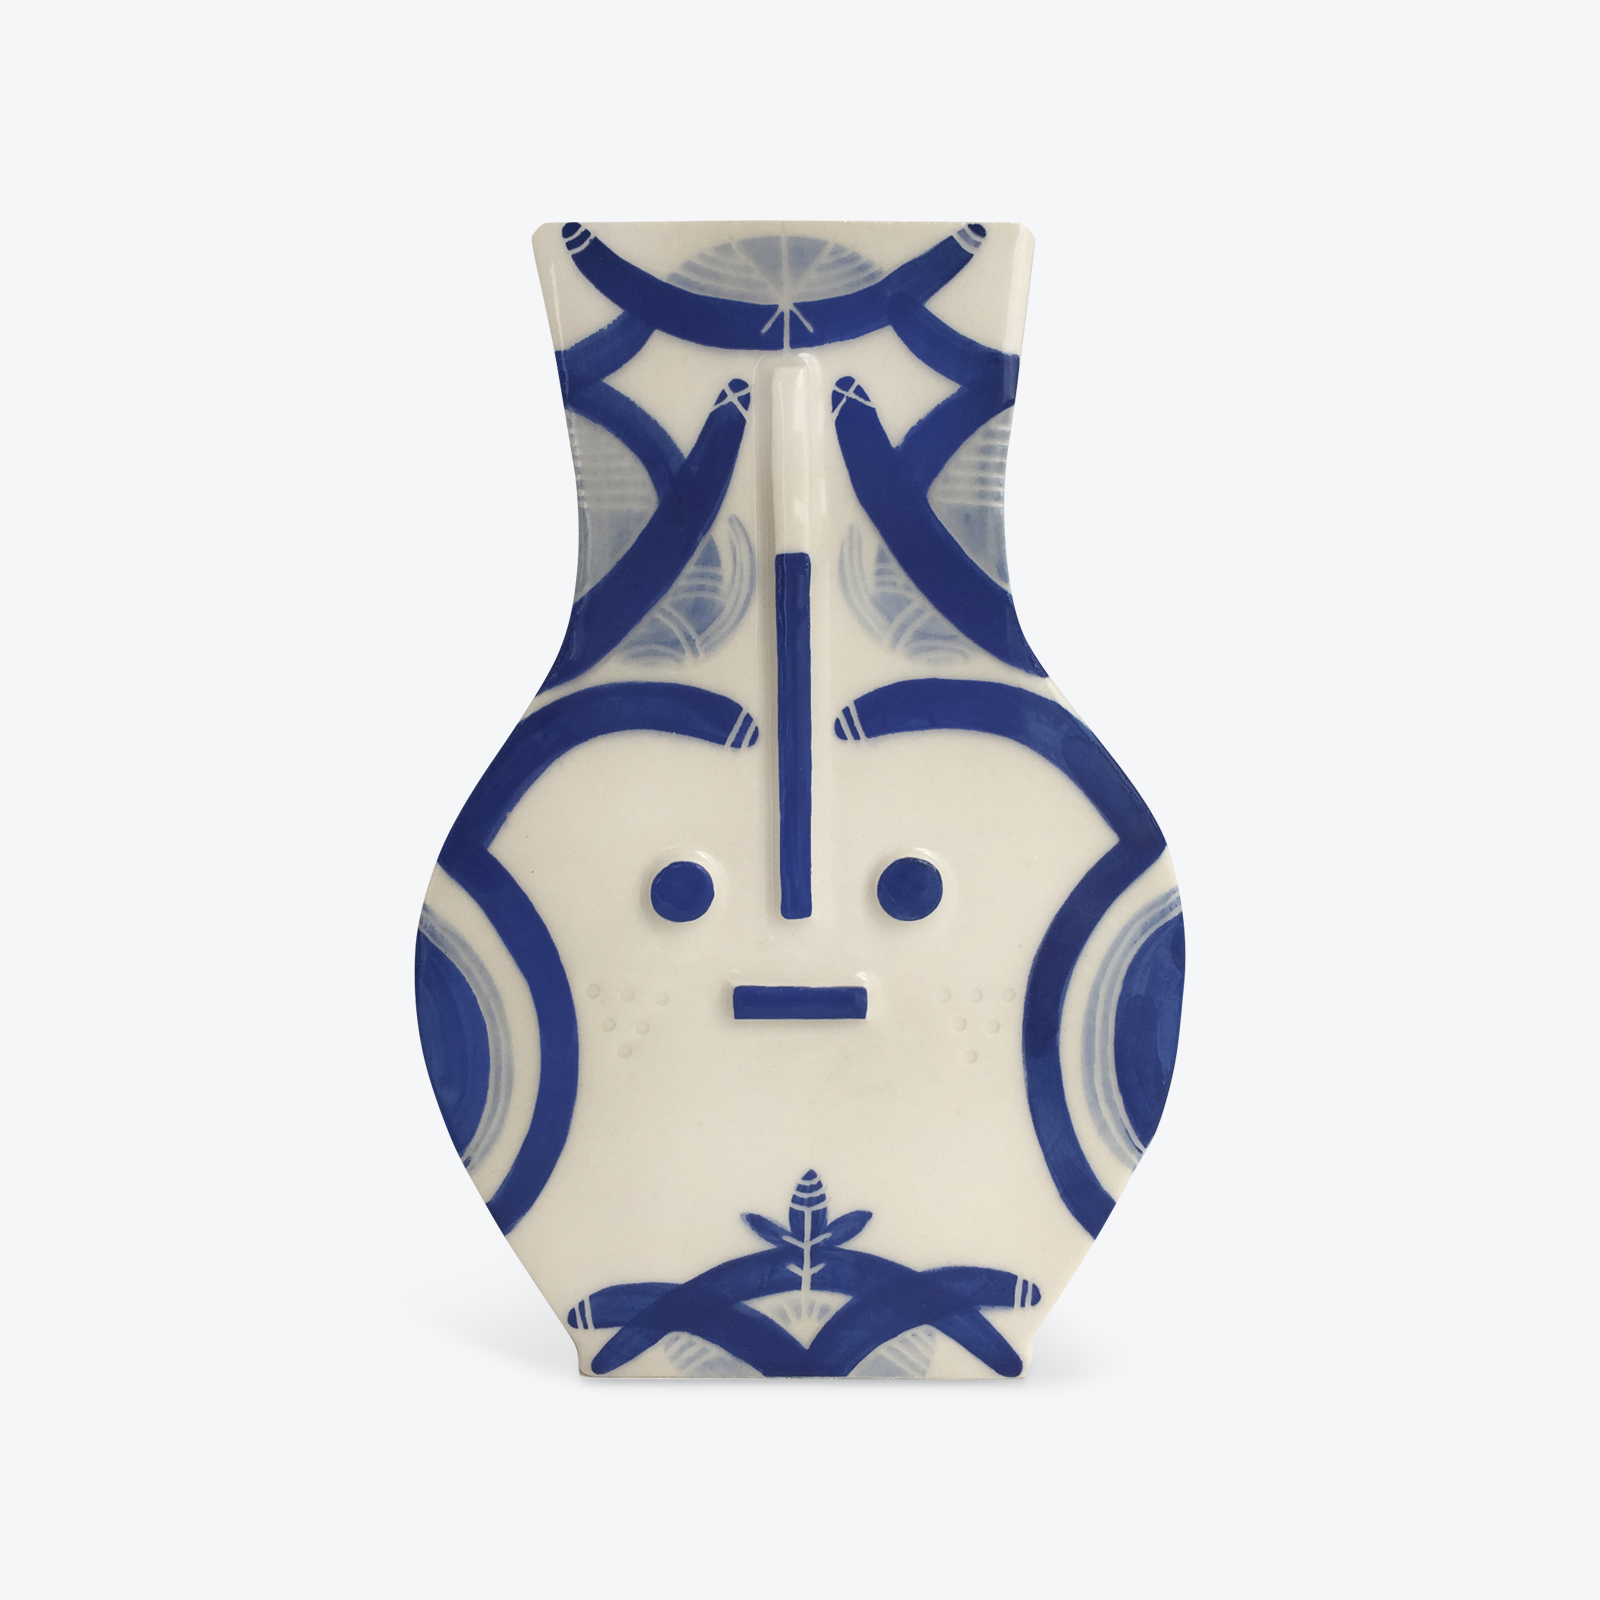 Blue Destiny Blue Ceramic Vase By Louise Kyriakou 01